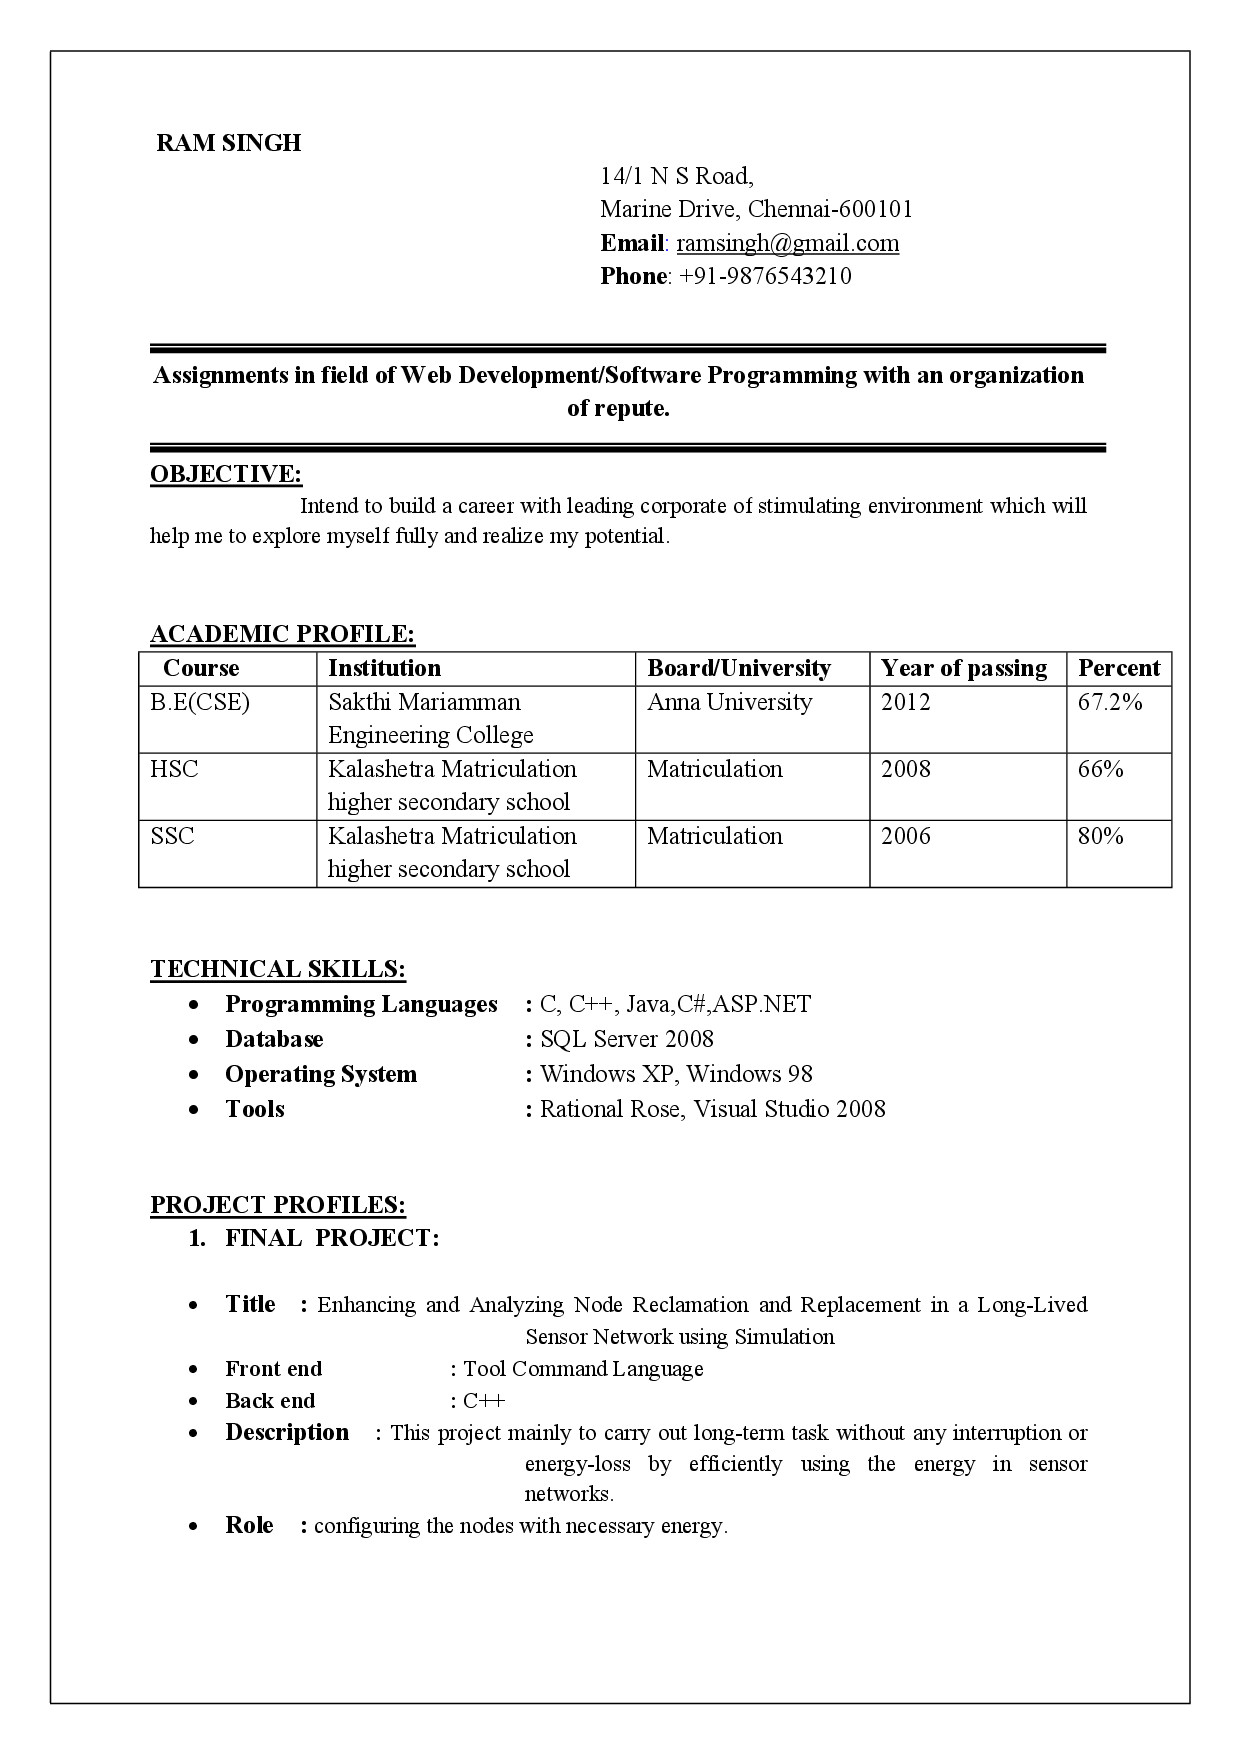 Resume Samples for Freshers Achievements In Resume Examples for Freshers Achievements